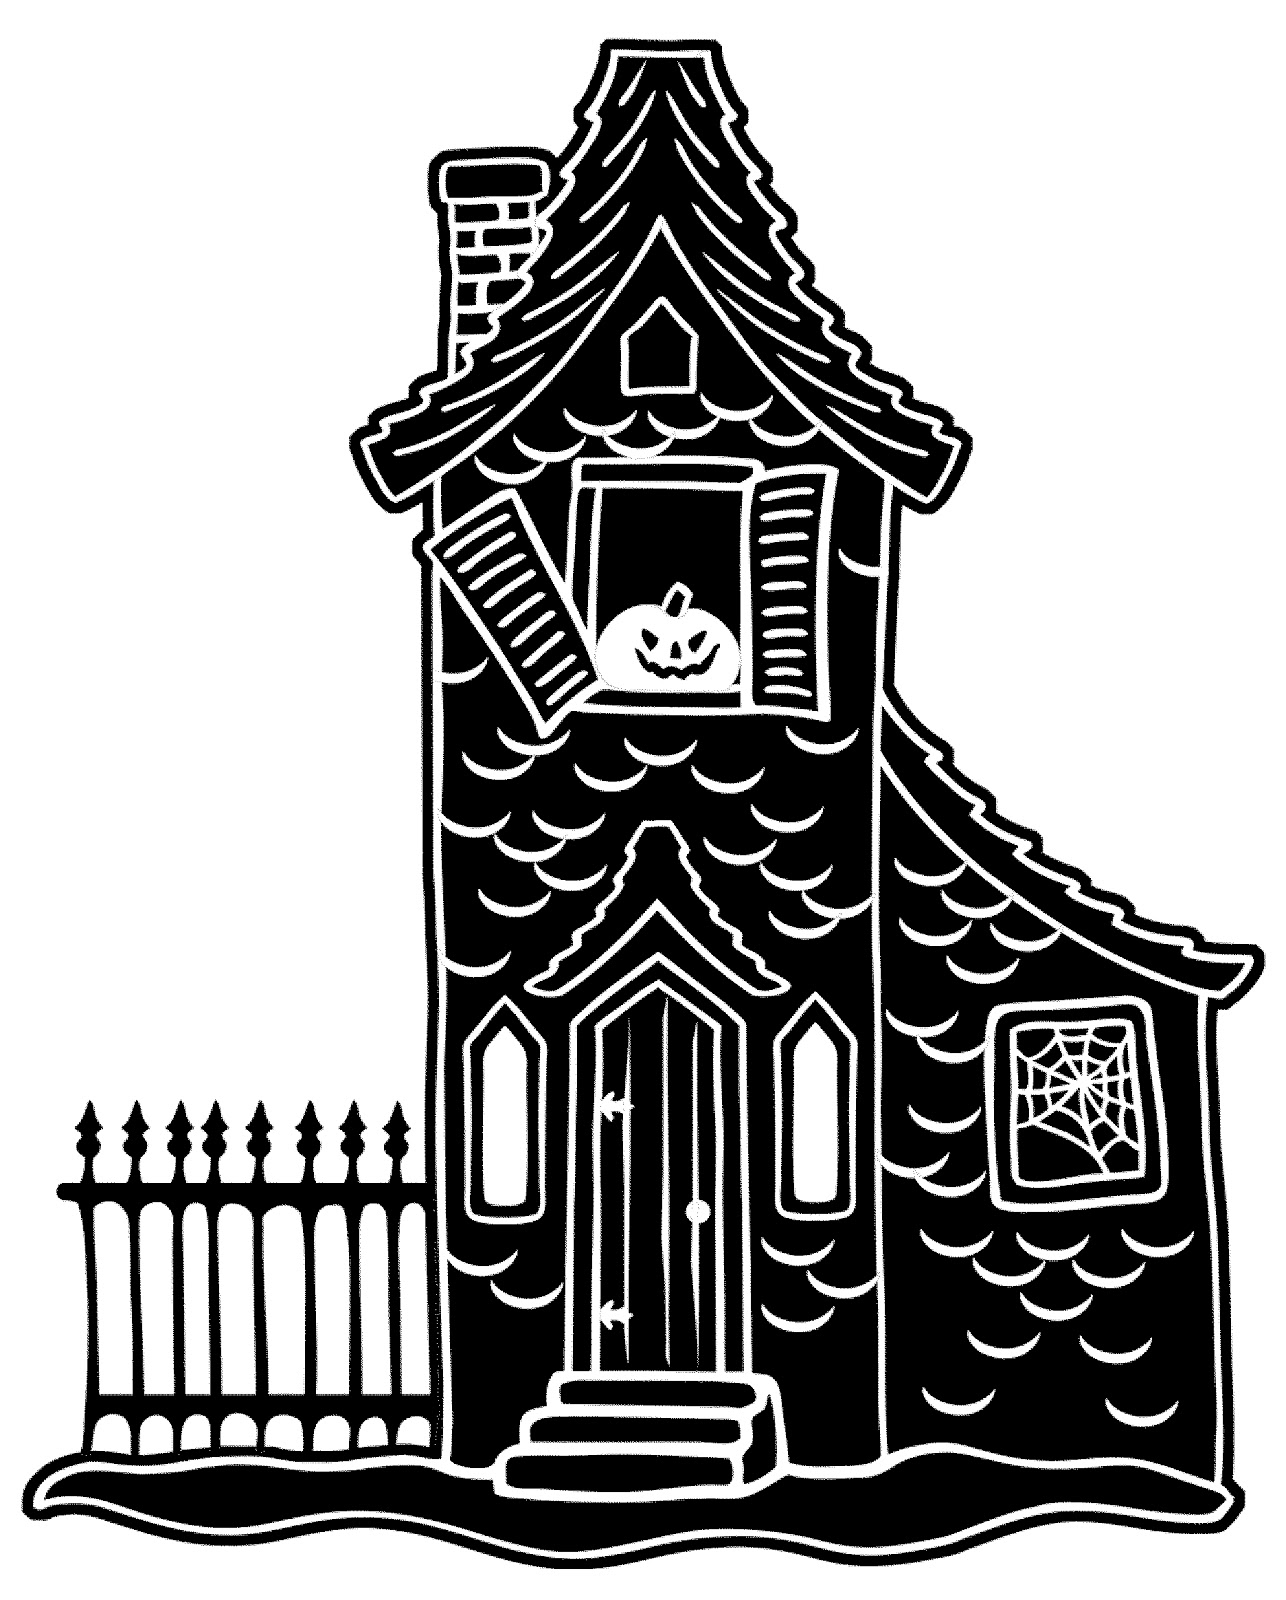 Free haunted house clipart black and white picture free library Free Haunted House Clipart, Download Free Clip Art, Free Clip Art on ... picture free library